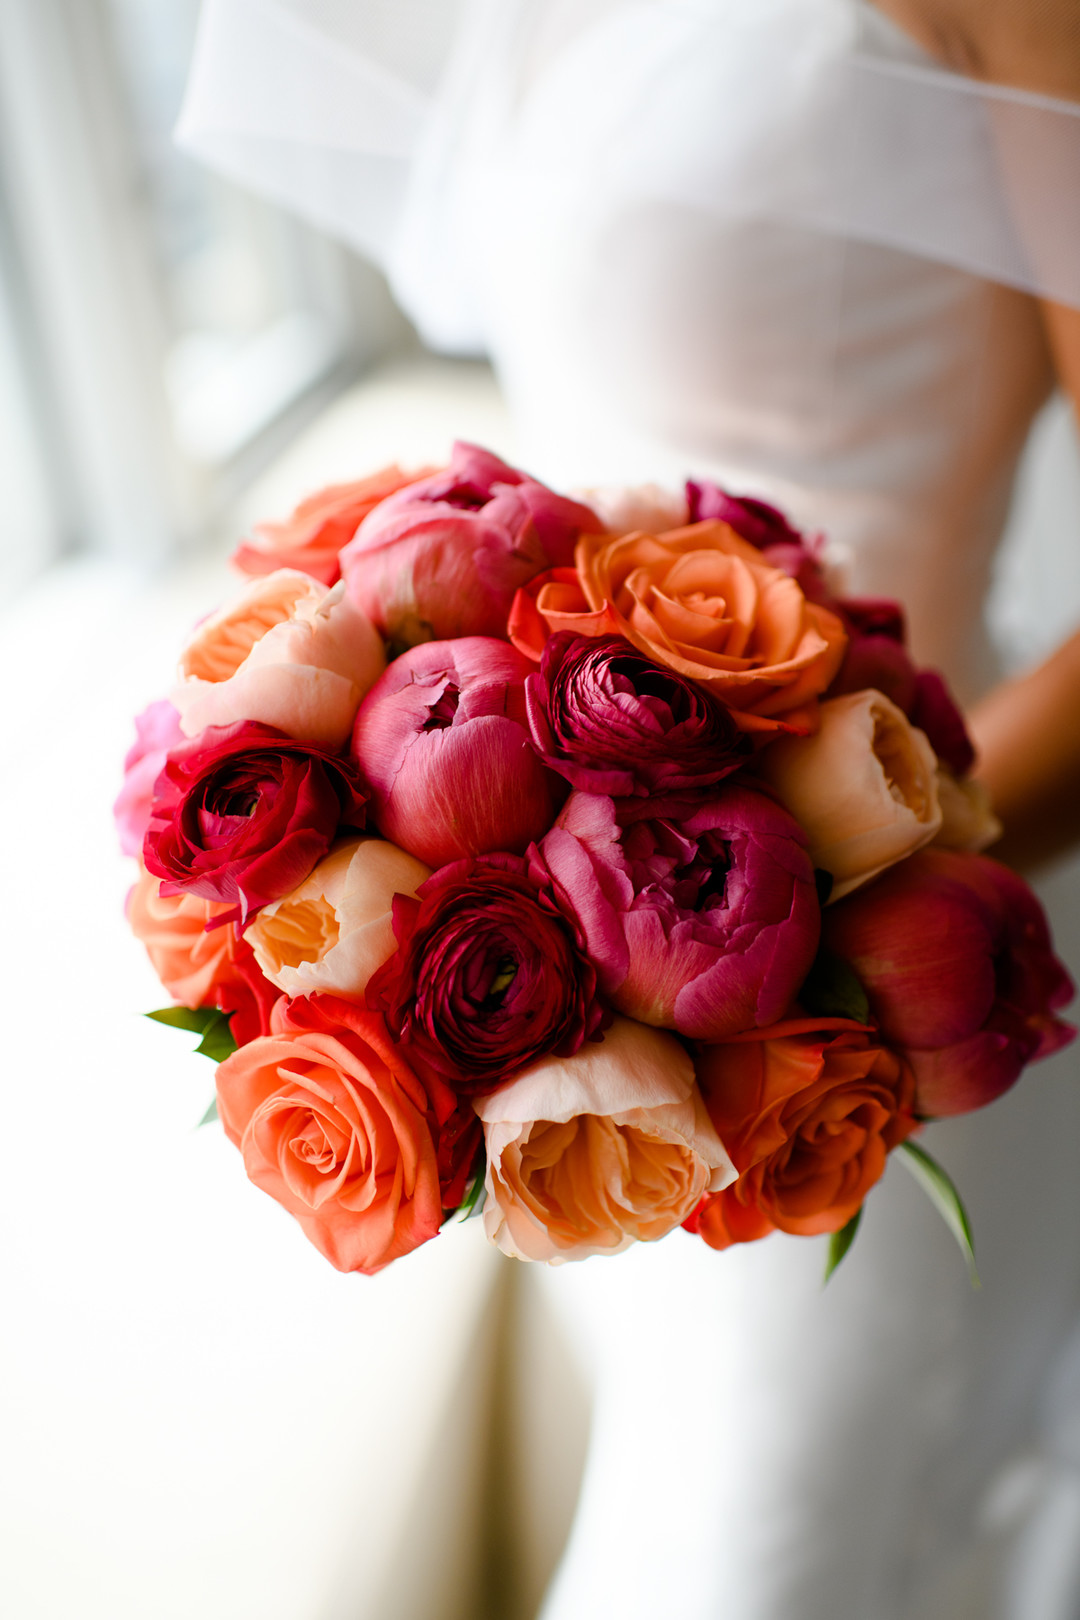 Pink and orange wedding bouquet: Timeless and colorful Chicago wedding in Lincoln Park captured by StudioThisIs. See more wedding ideas at CHItheeWED.com!